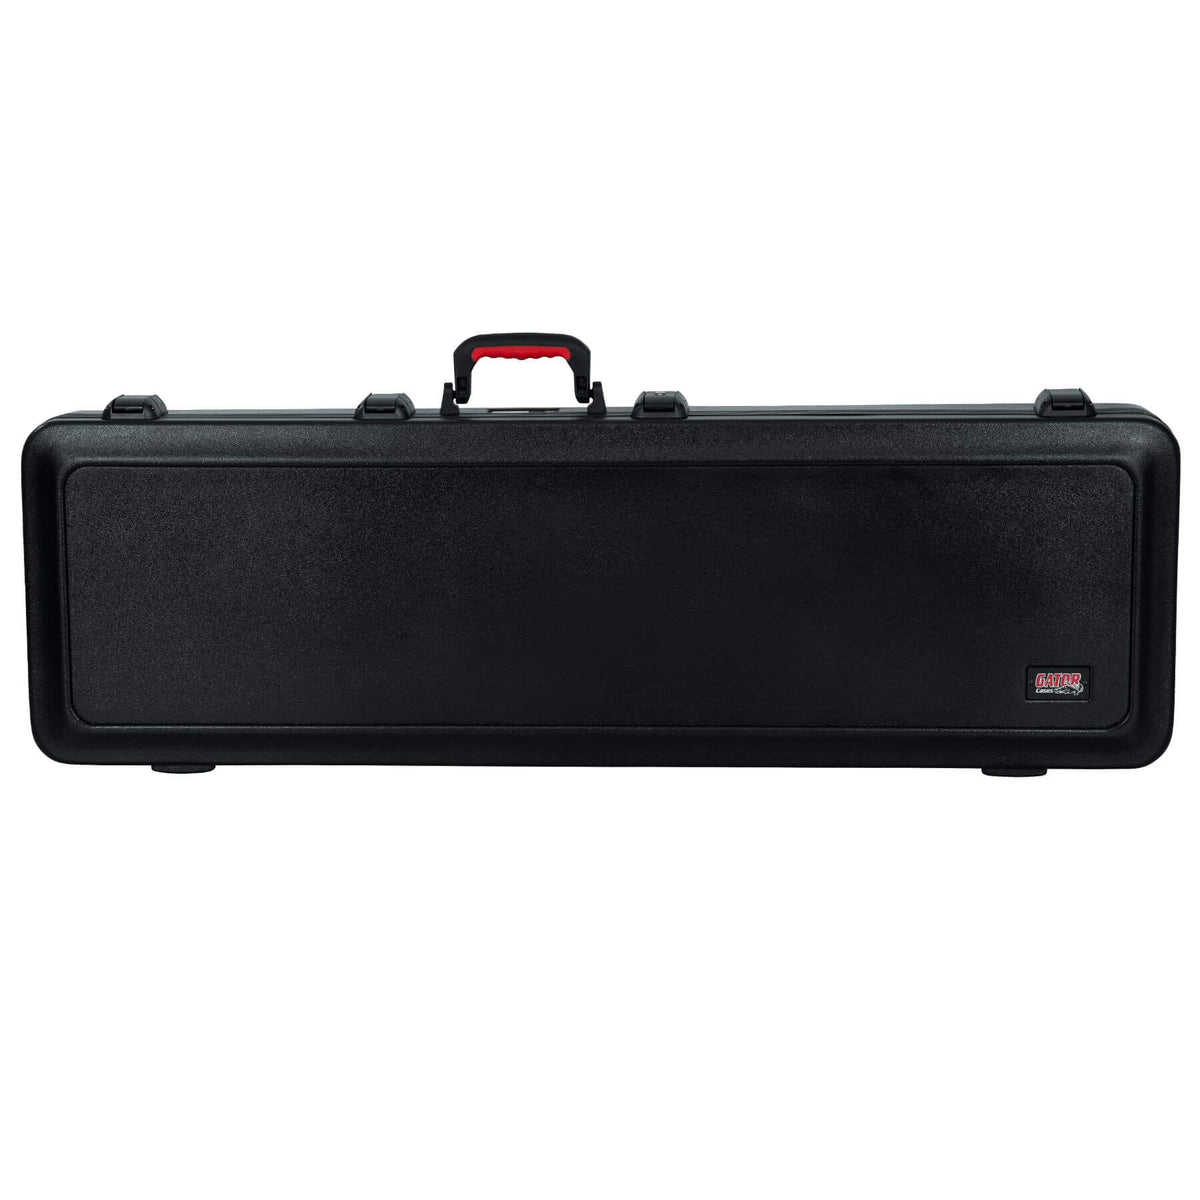 Gator ATA Bass Guitar Case fits Fender Mark Hoppus Signature Bass